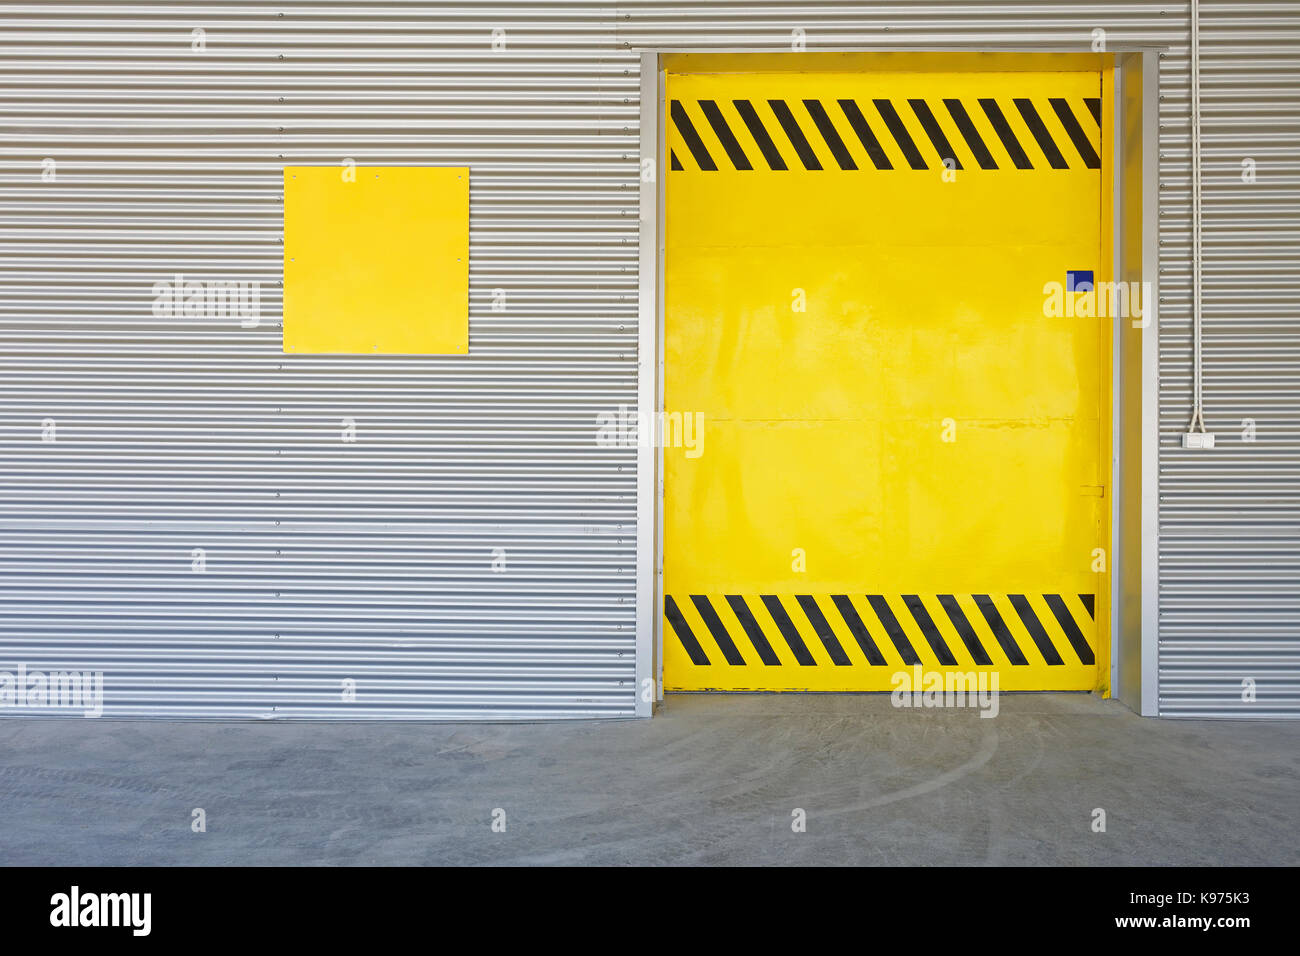 Big Yellow Gate Door at Distribution Warehouse - Stock Image